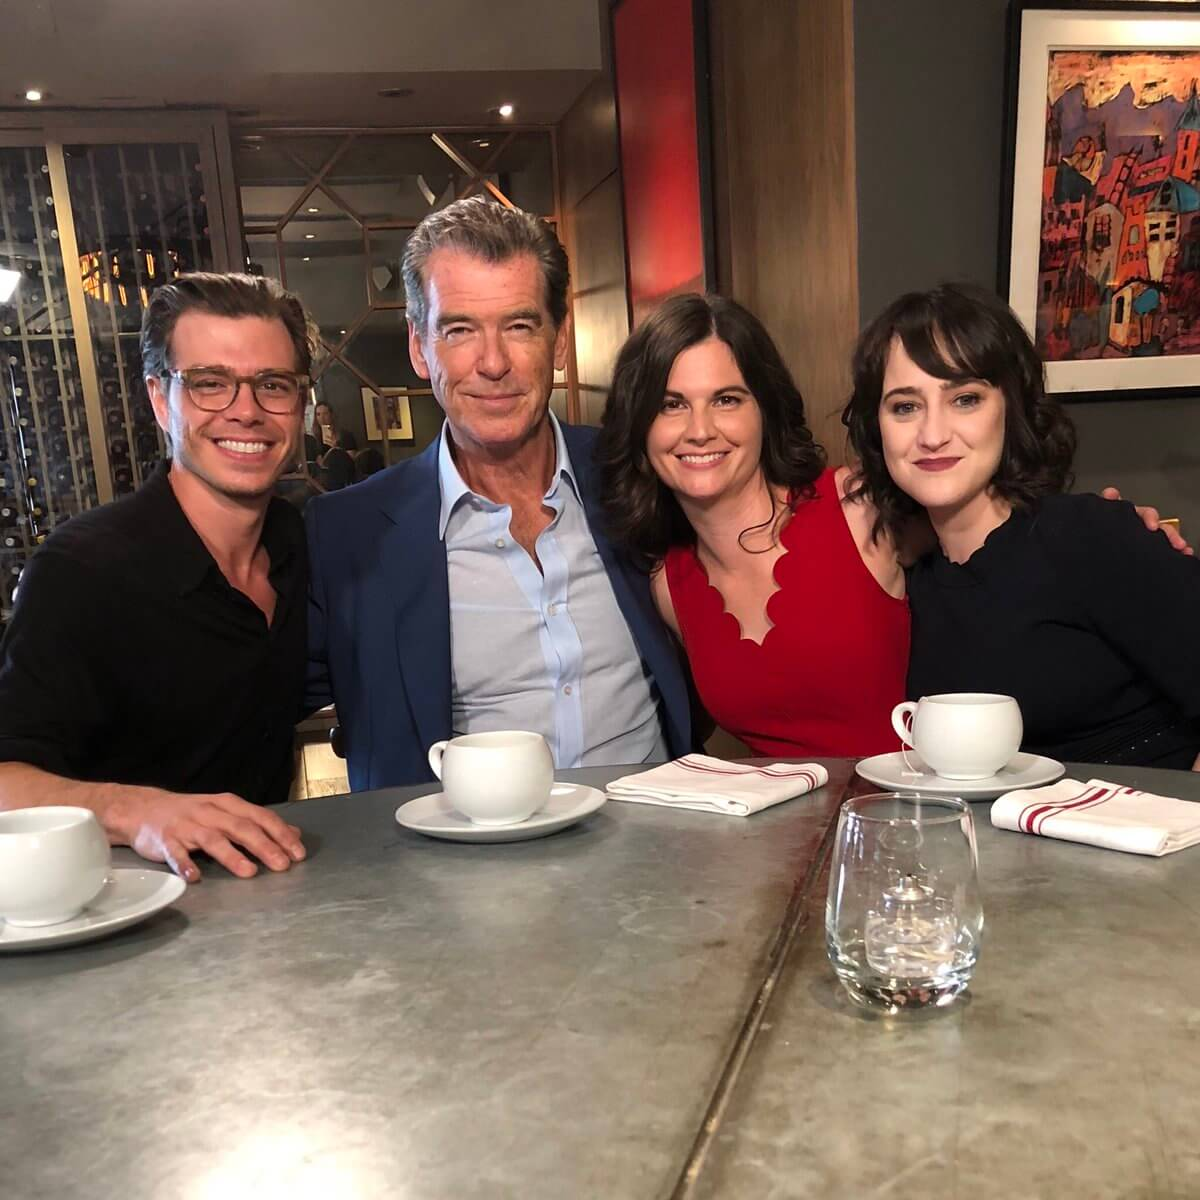 All Grown Up: Pierce Brosnan Reunites With The Mrs. Doubtfire Cast 25 Years Later